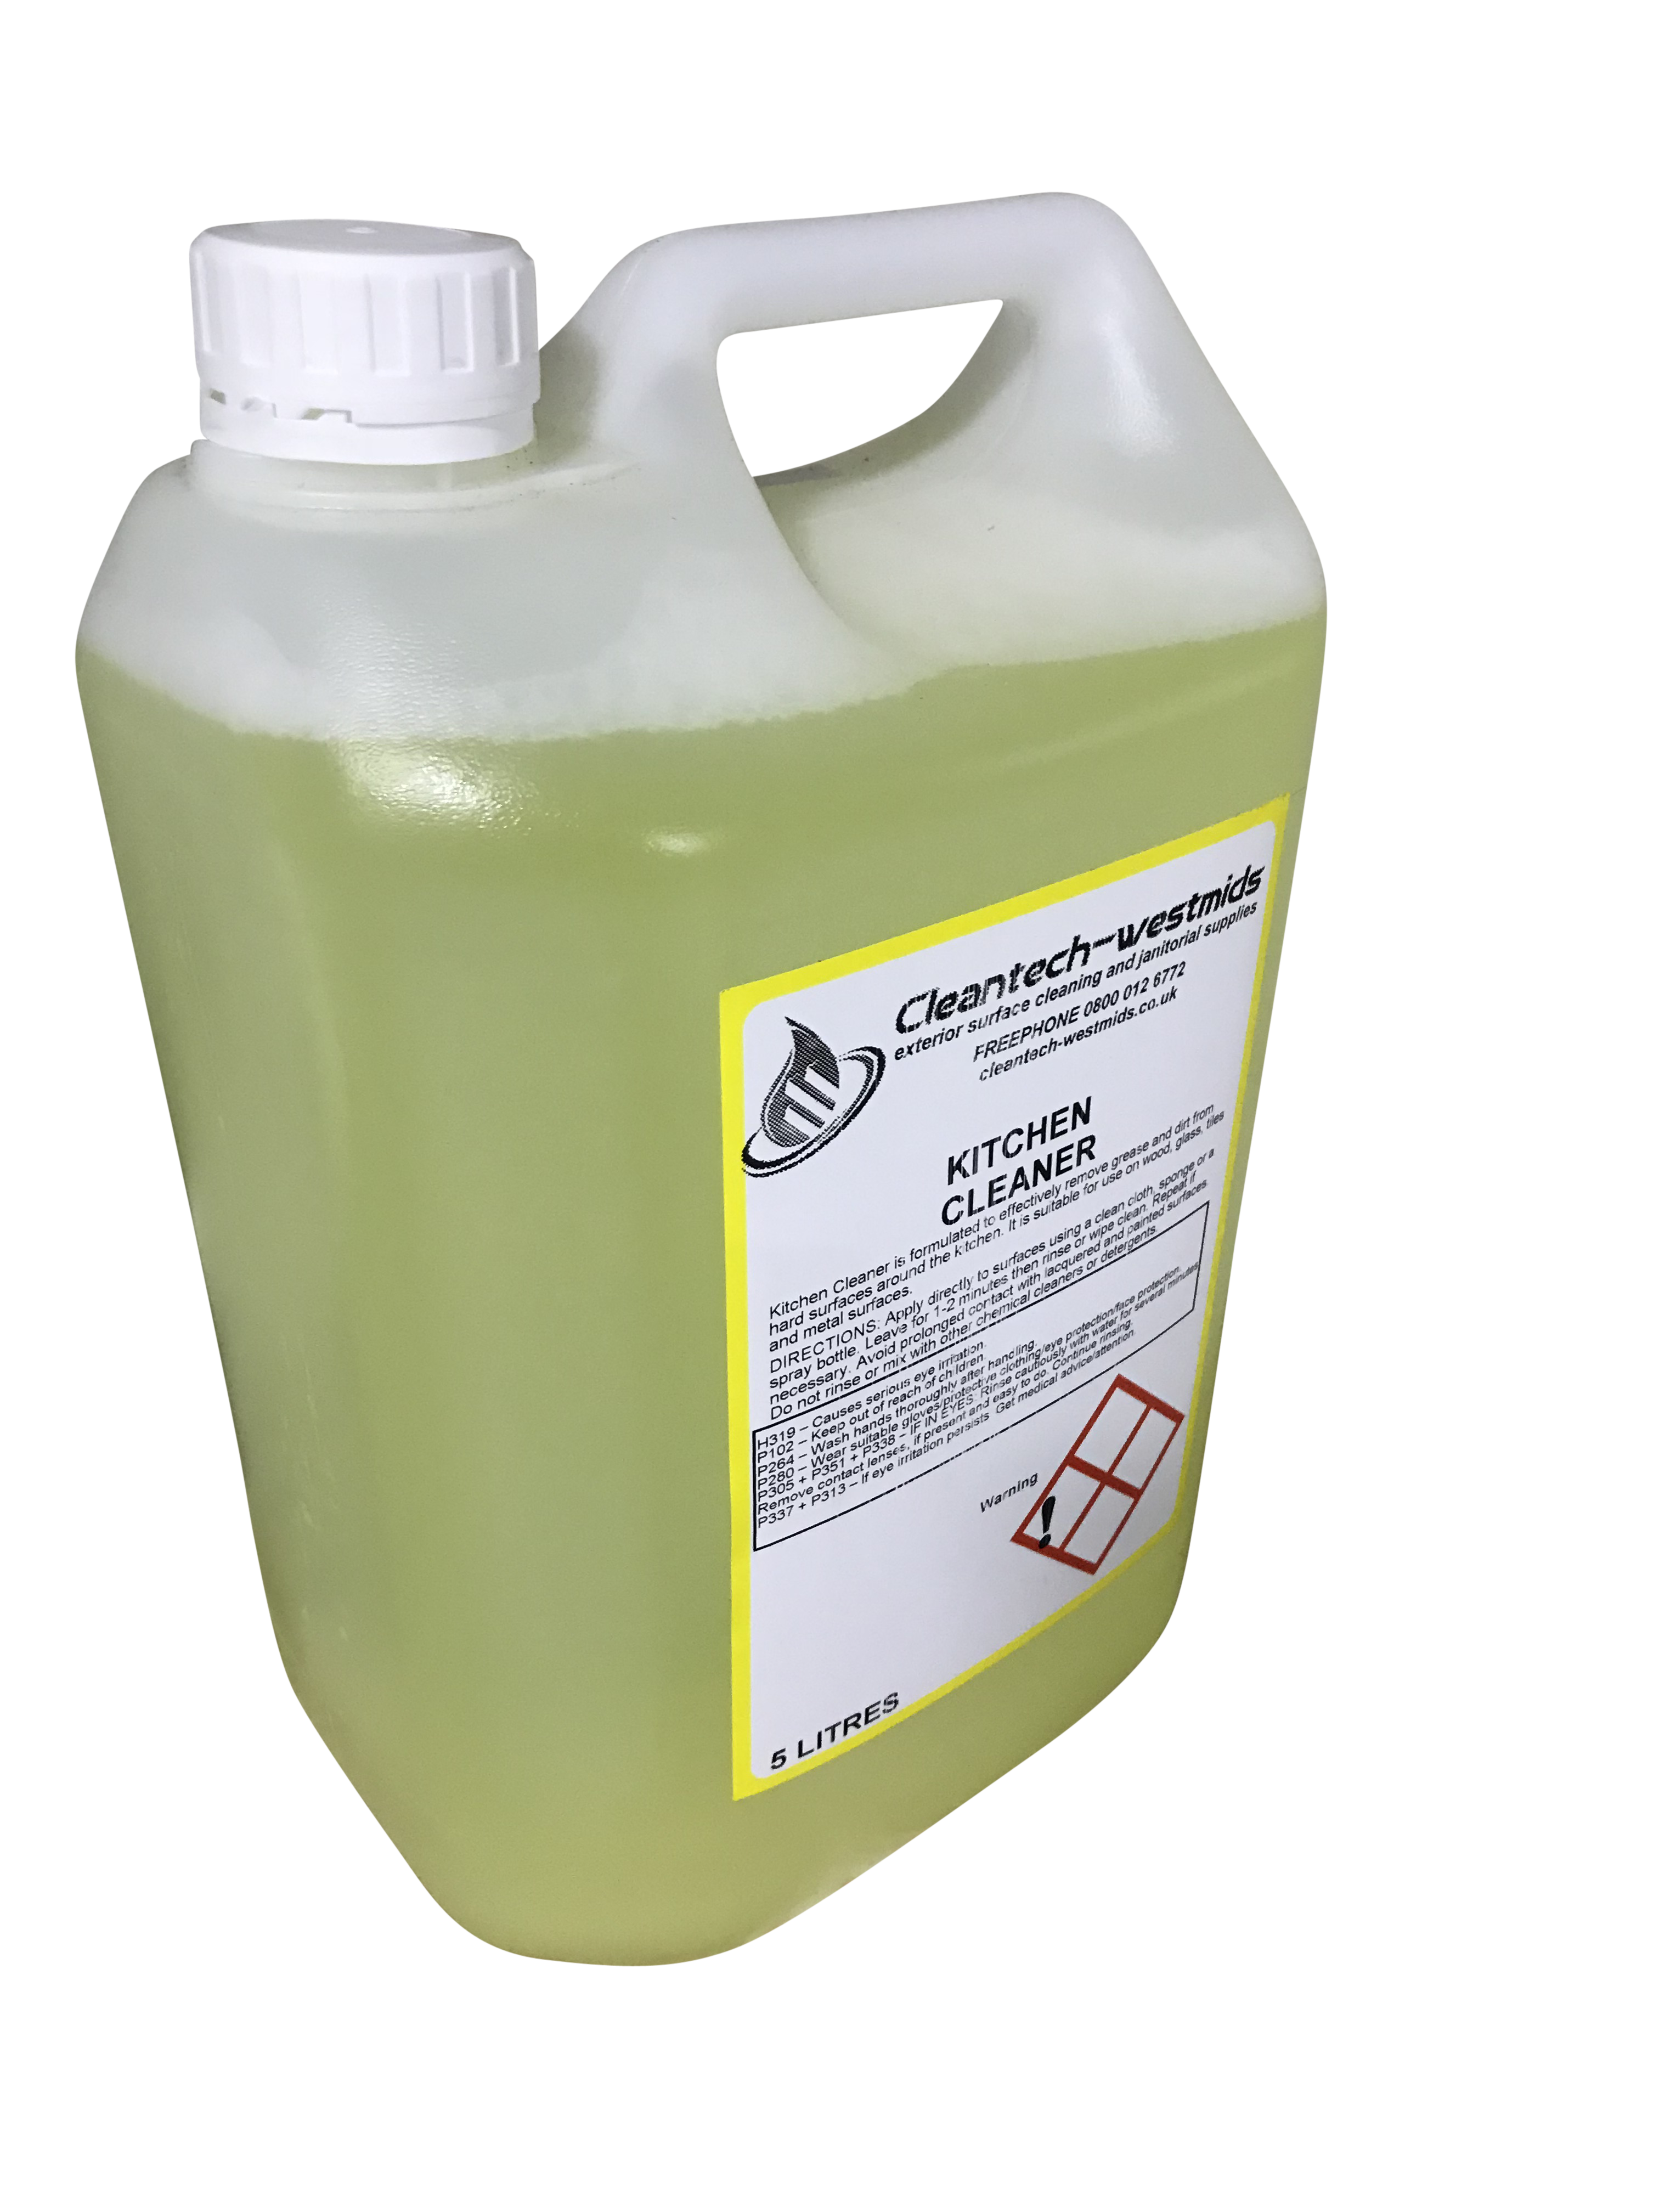 Kitchen Cleaner 5 Litres Cleantech Westmids